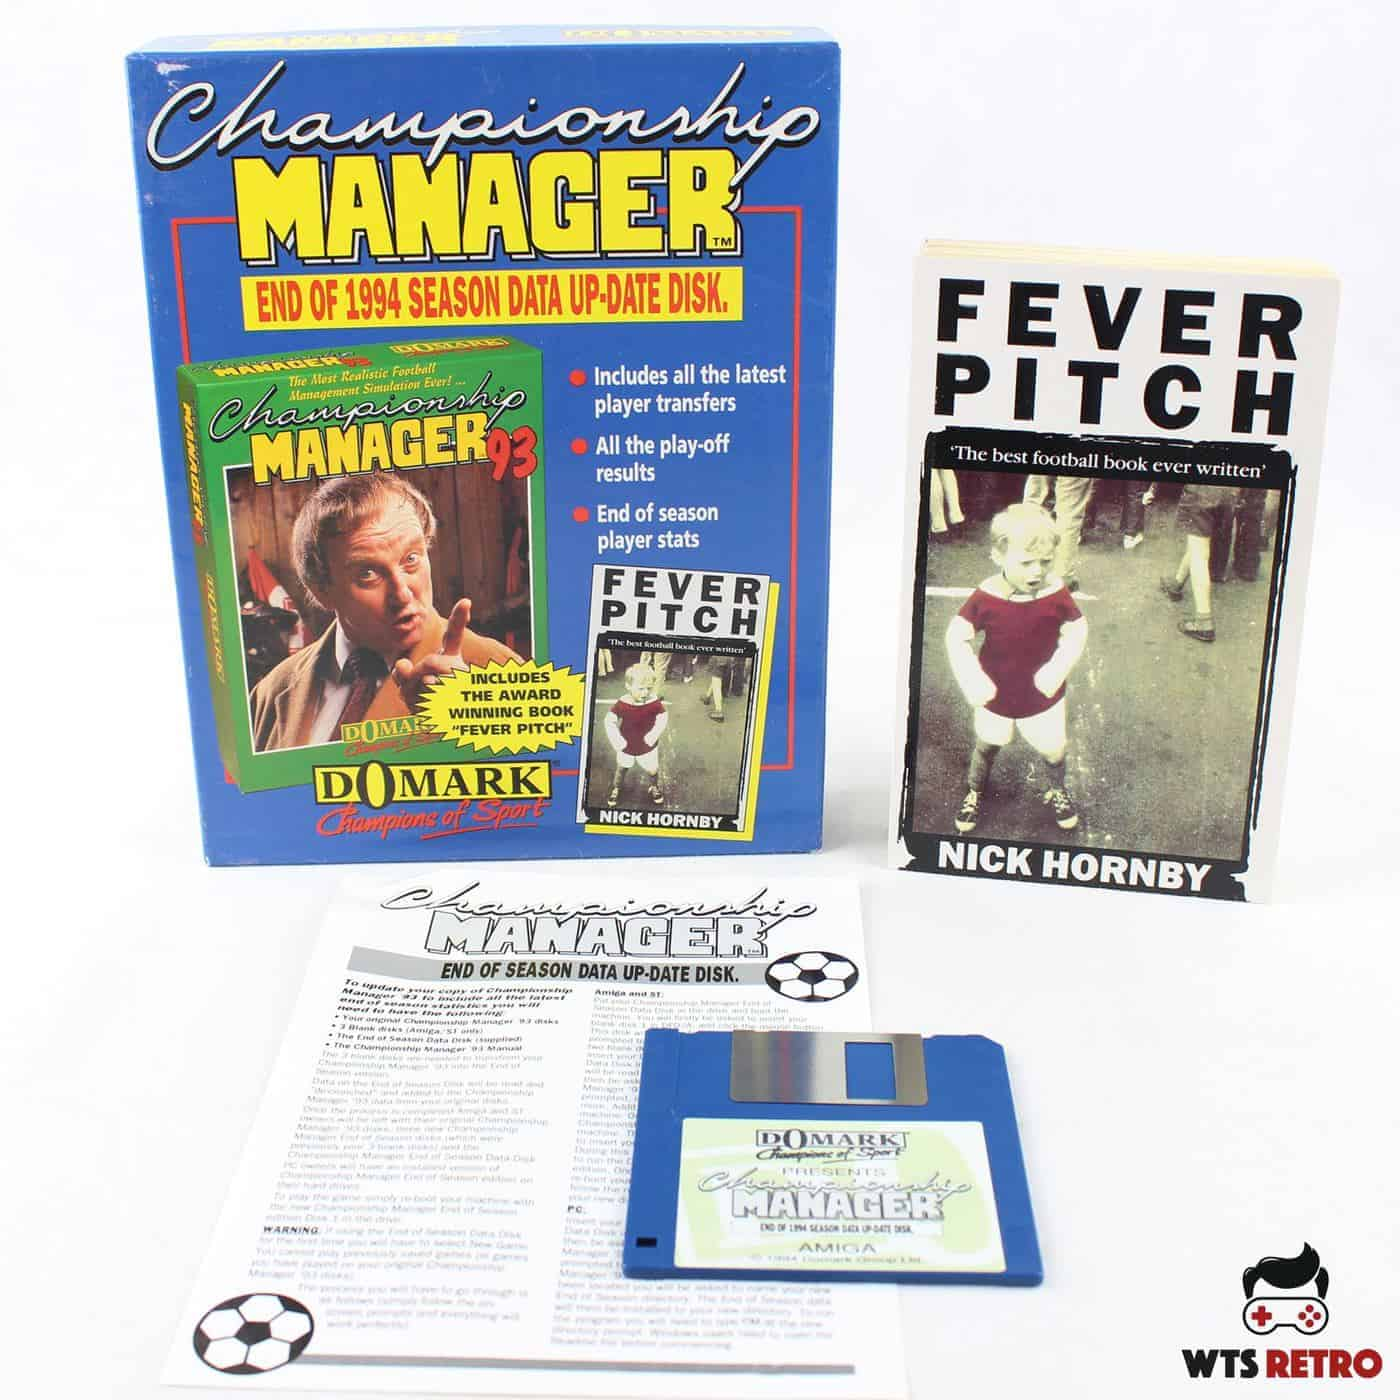 Championship Manager: End of 1994 Season Data Up-date Disk (Amiga)